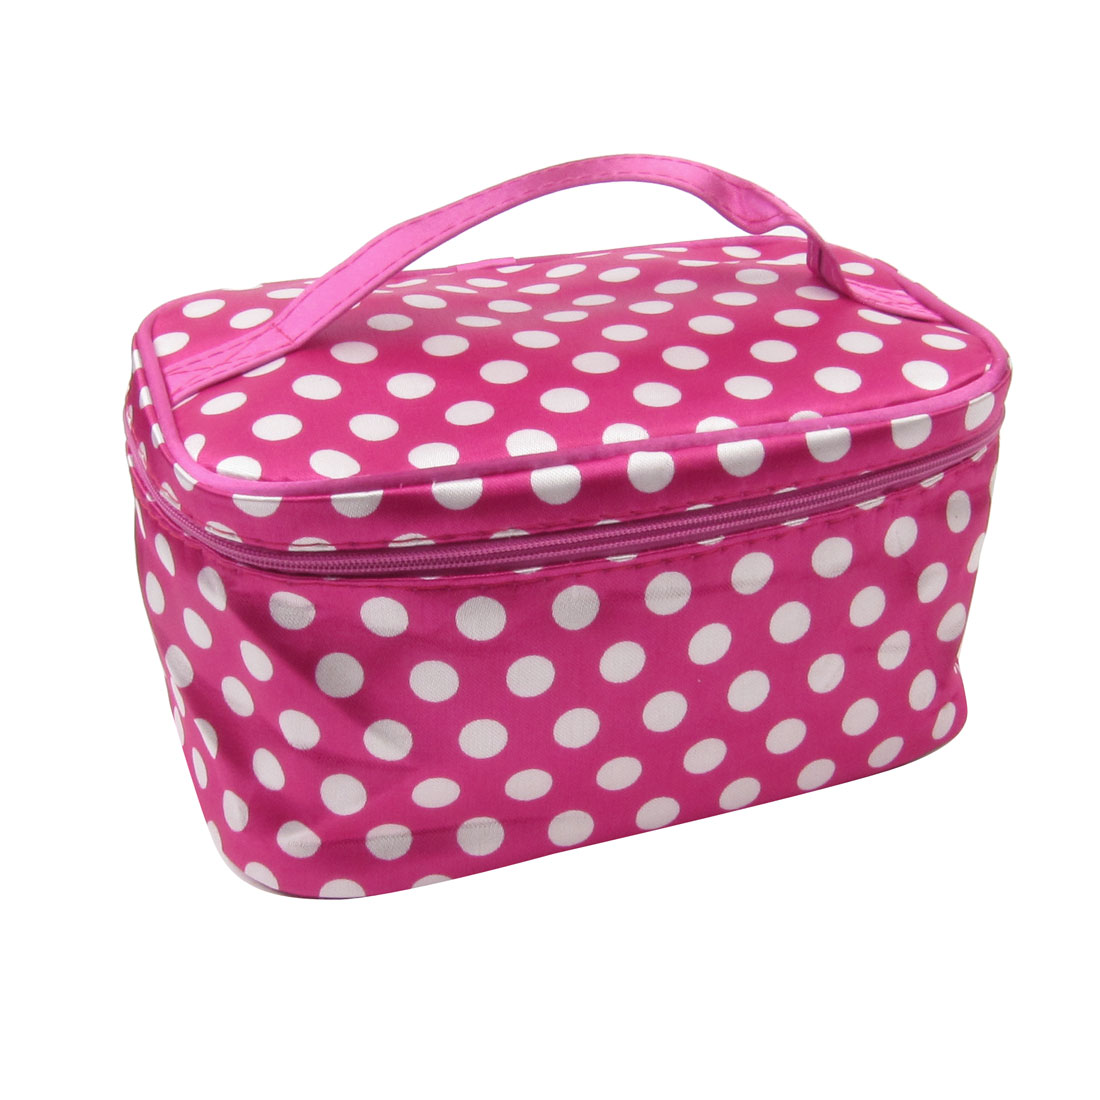 Dots Print Fuchsia Polyester Cosmetic Bag Pouch for Ladies